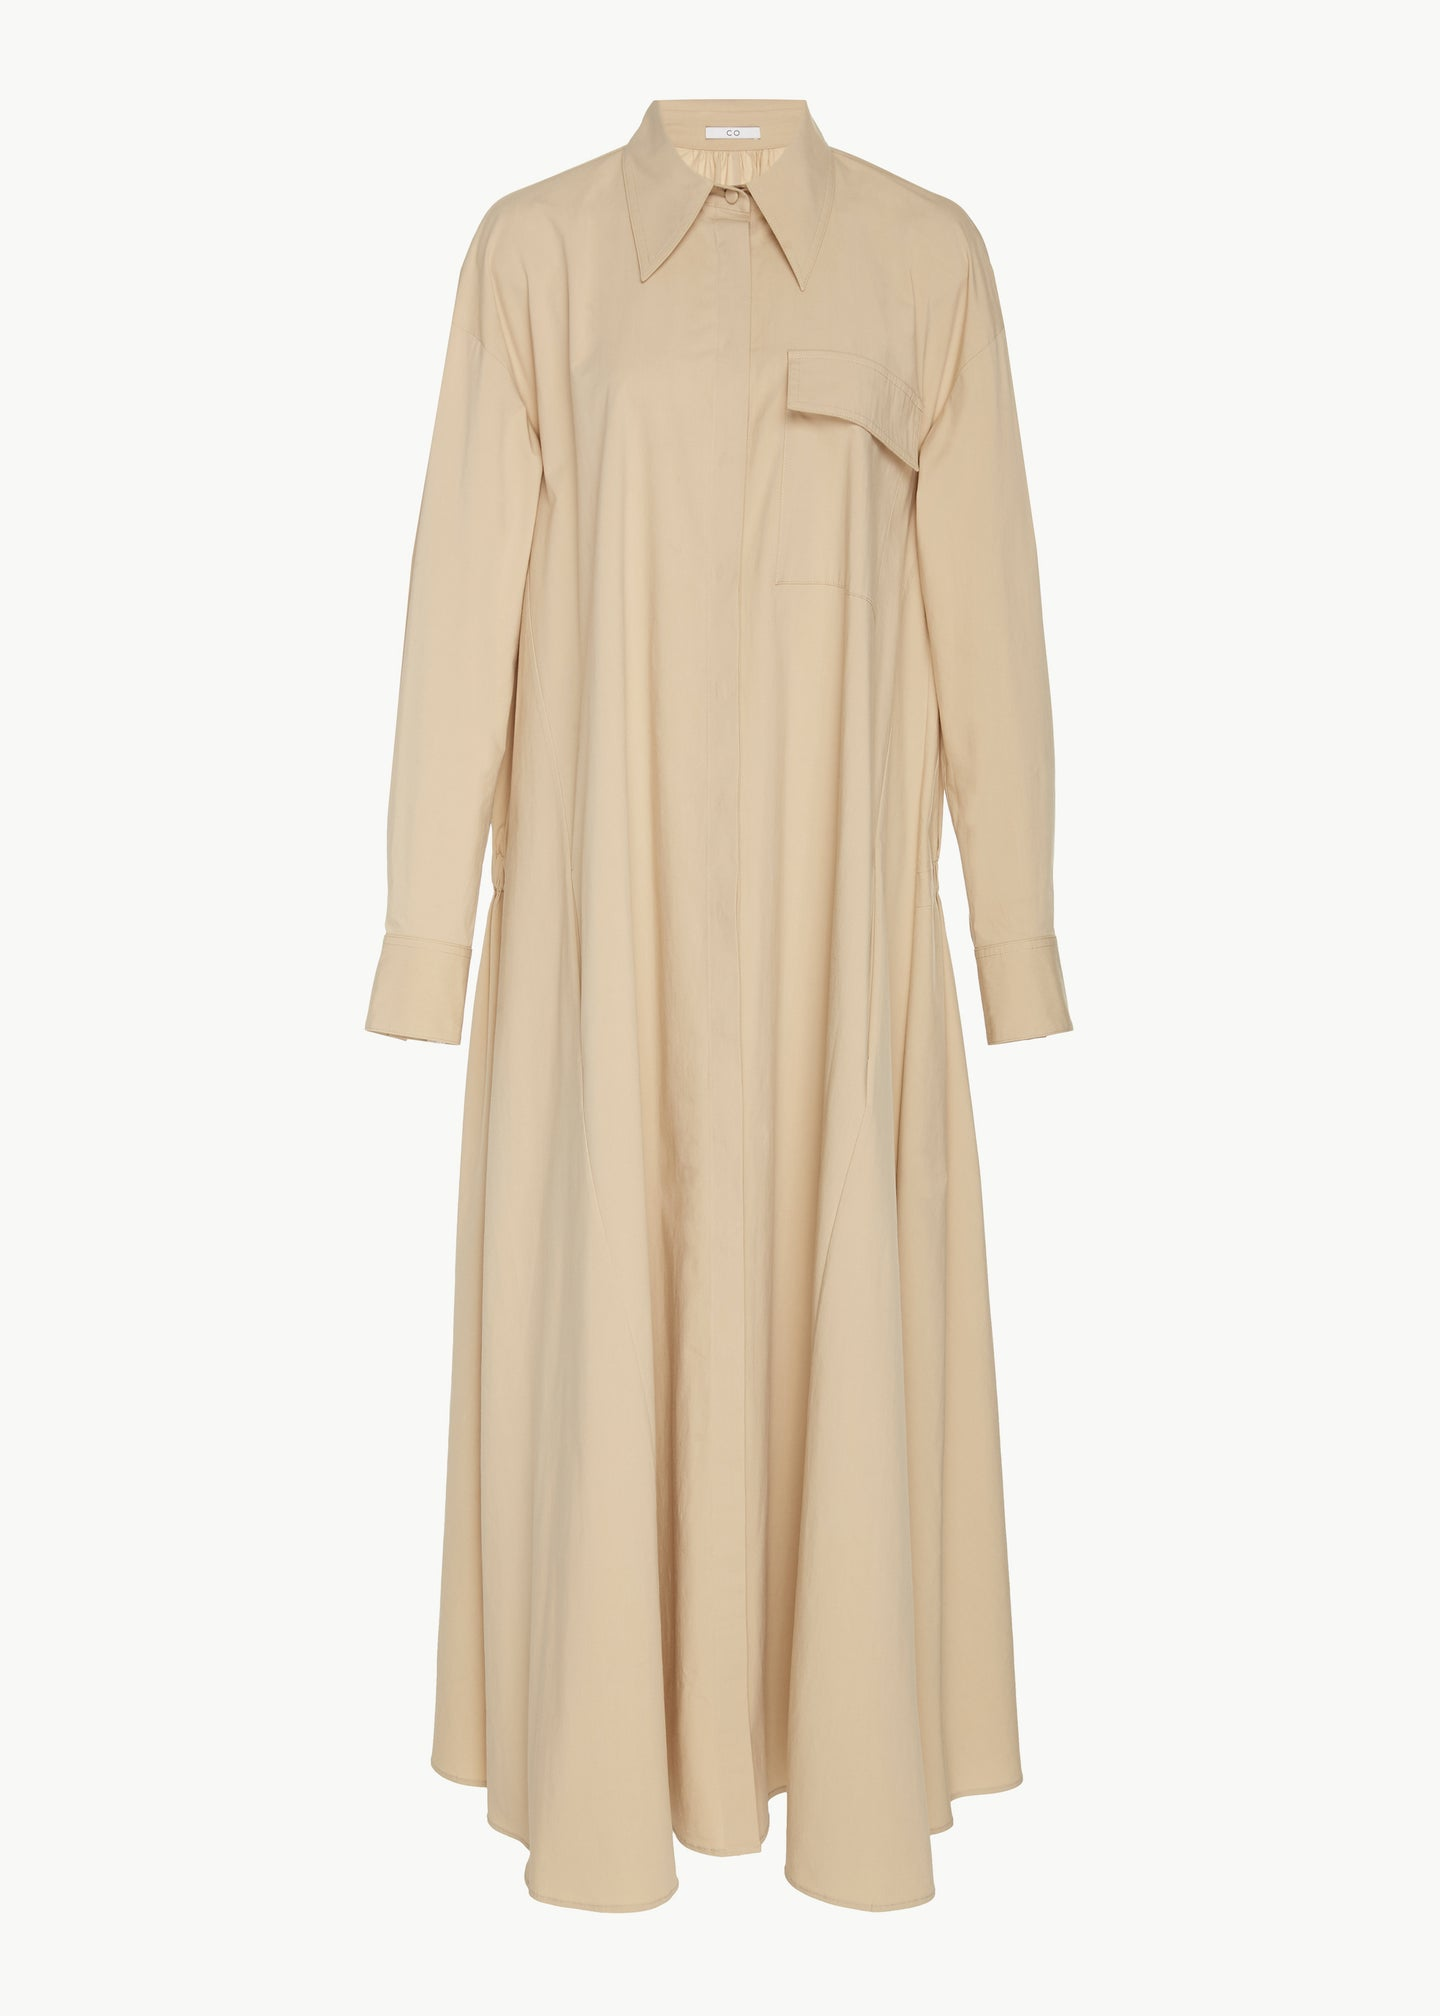 Elastic Back Shirt Dress in Winter Poplin - Sand - Co Collections